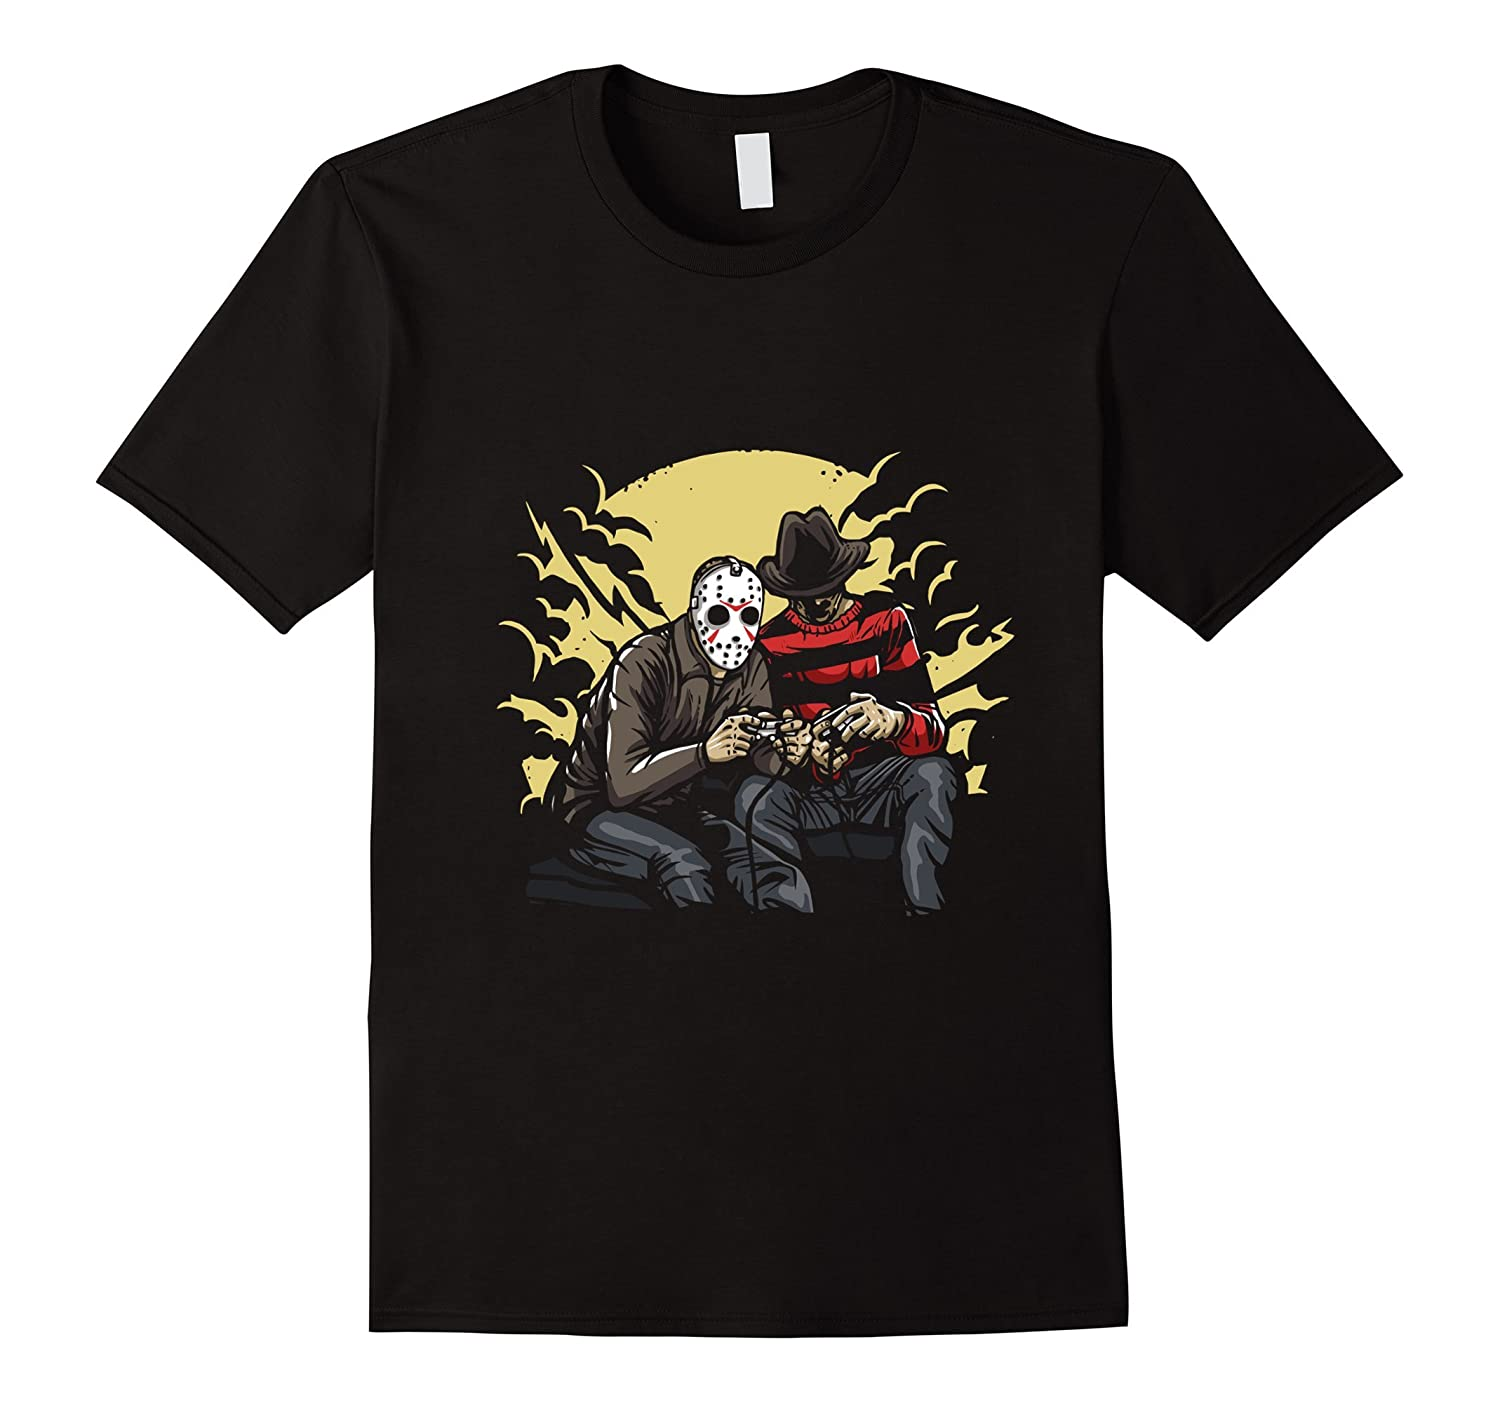 Funny Halloween T-Shirt - Two killers playing video games-FL